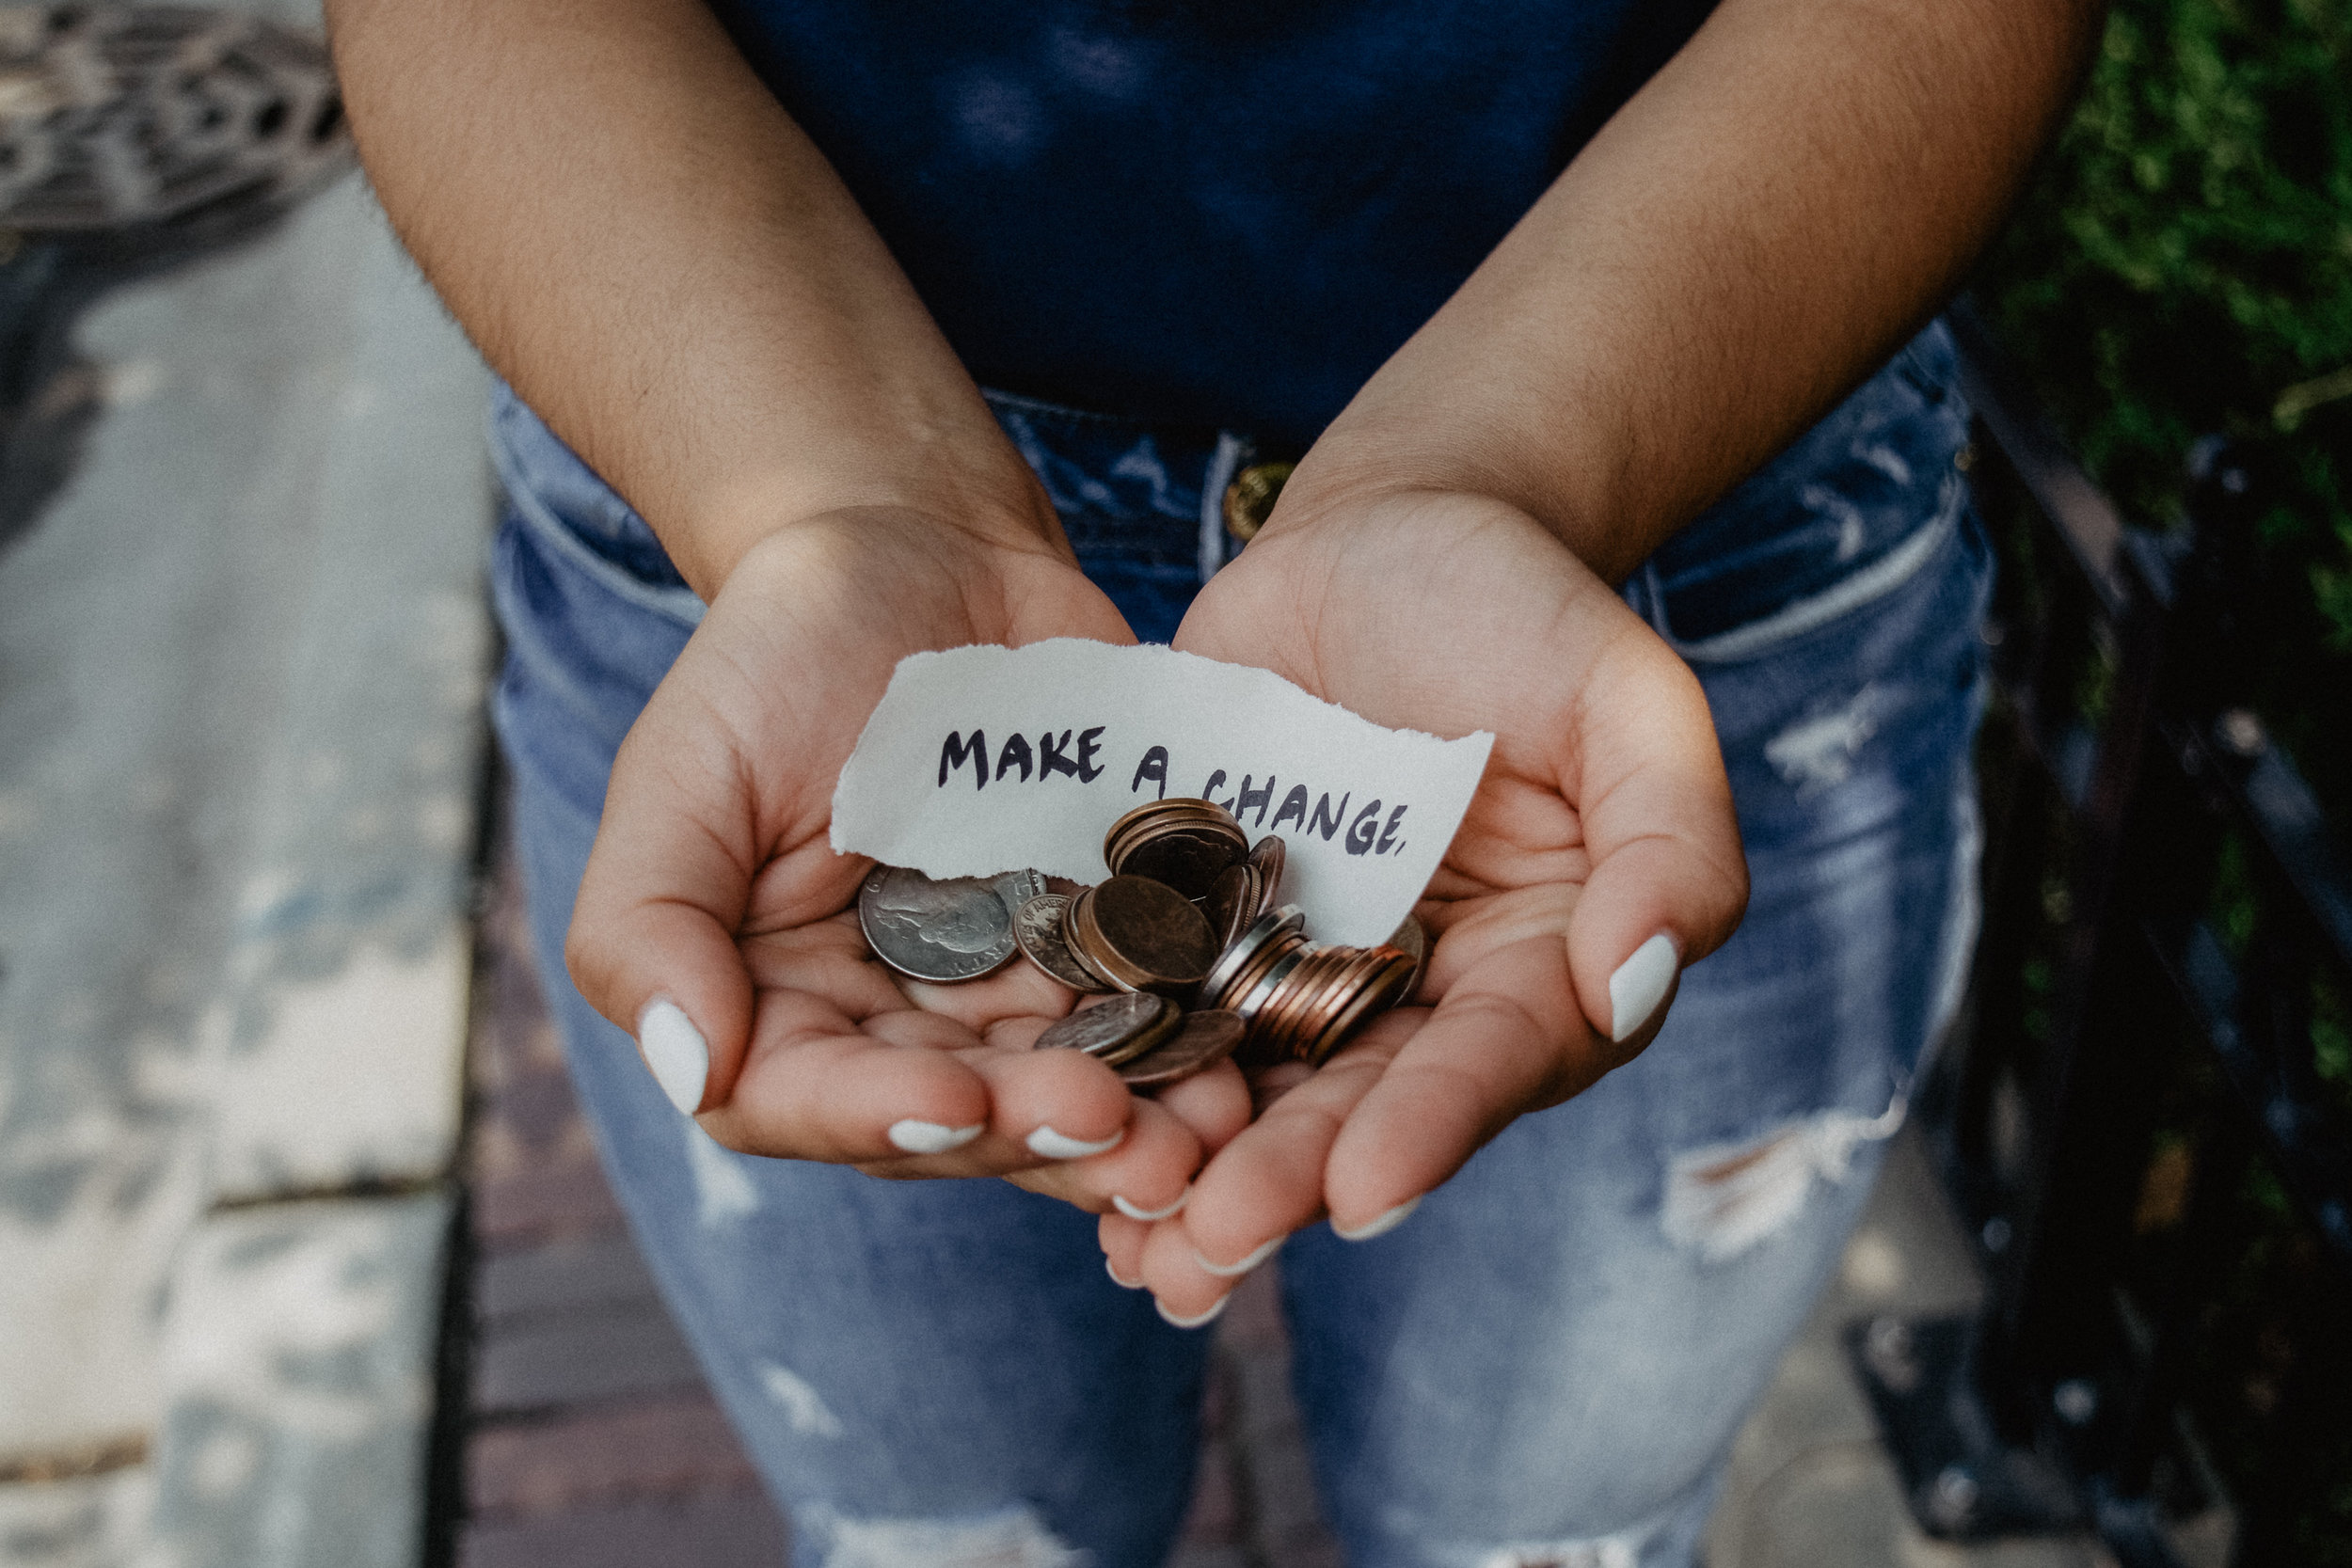 Donate instead of spending money on mobile devices